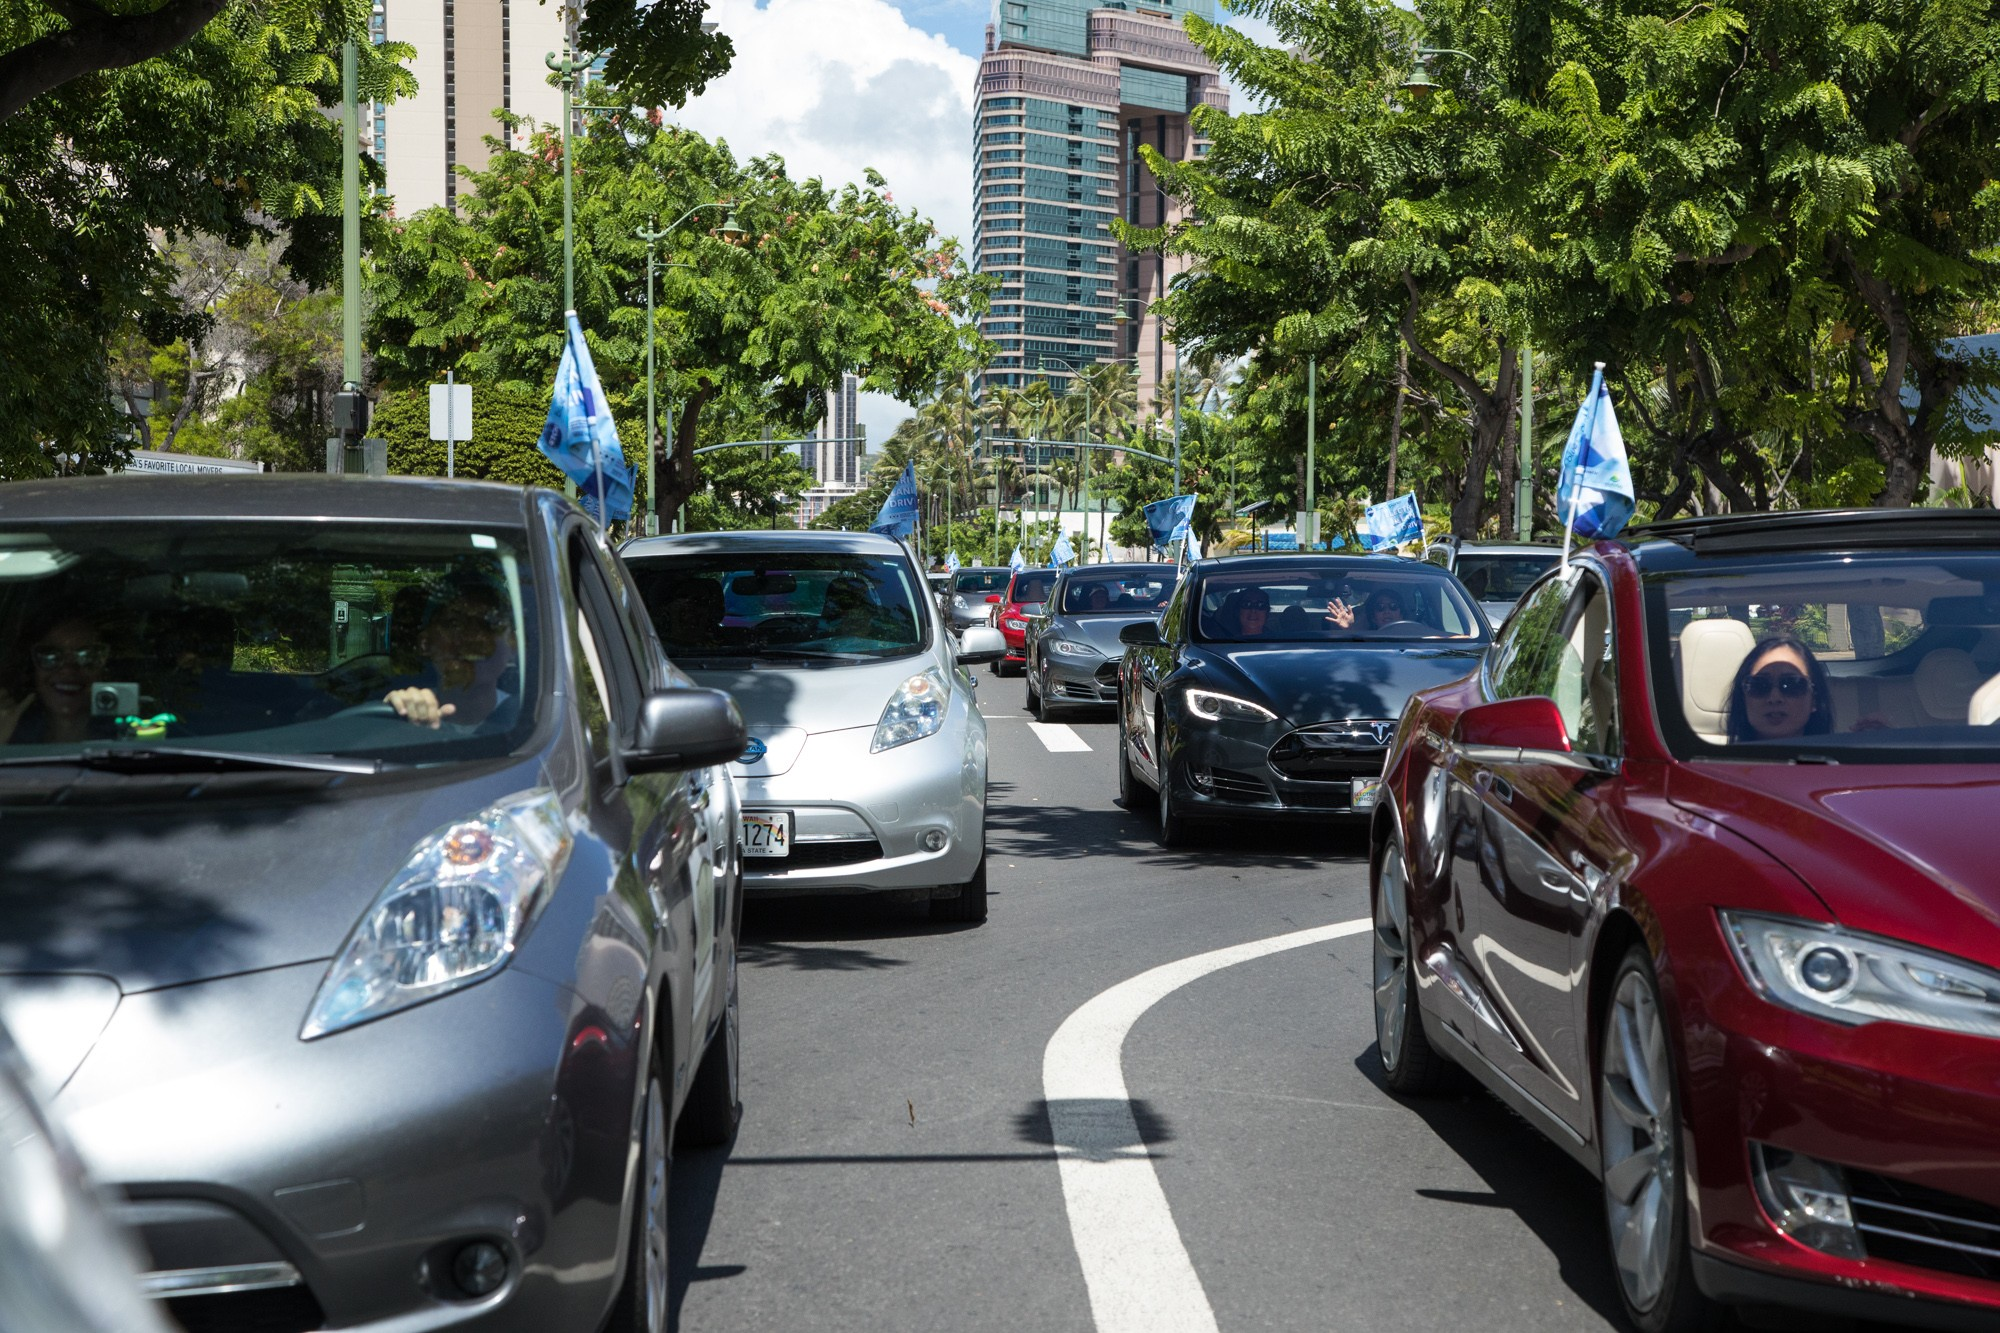 a photo from the Second Annual Electric Island Drive and EV Fair in Honolulu, HI, organized by the Sustainable Transportation Coalition of Hawaii and held on September 17, 2017. There were 90 EVs in the caravan-style drive, and approximately 250 people at the fair. Photo by Shem Lawlor, Hawaii Clean Cities Coalition Coordinator.